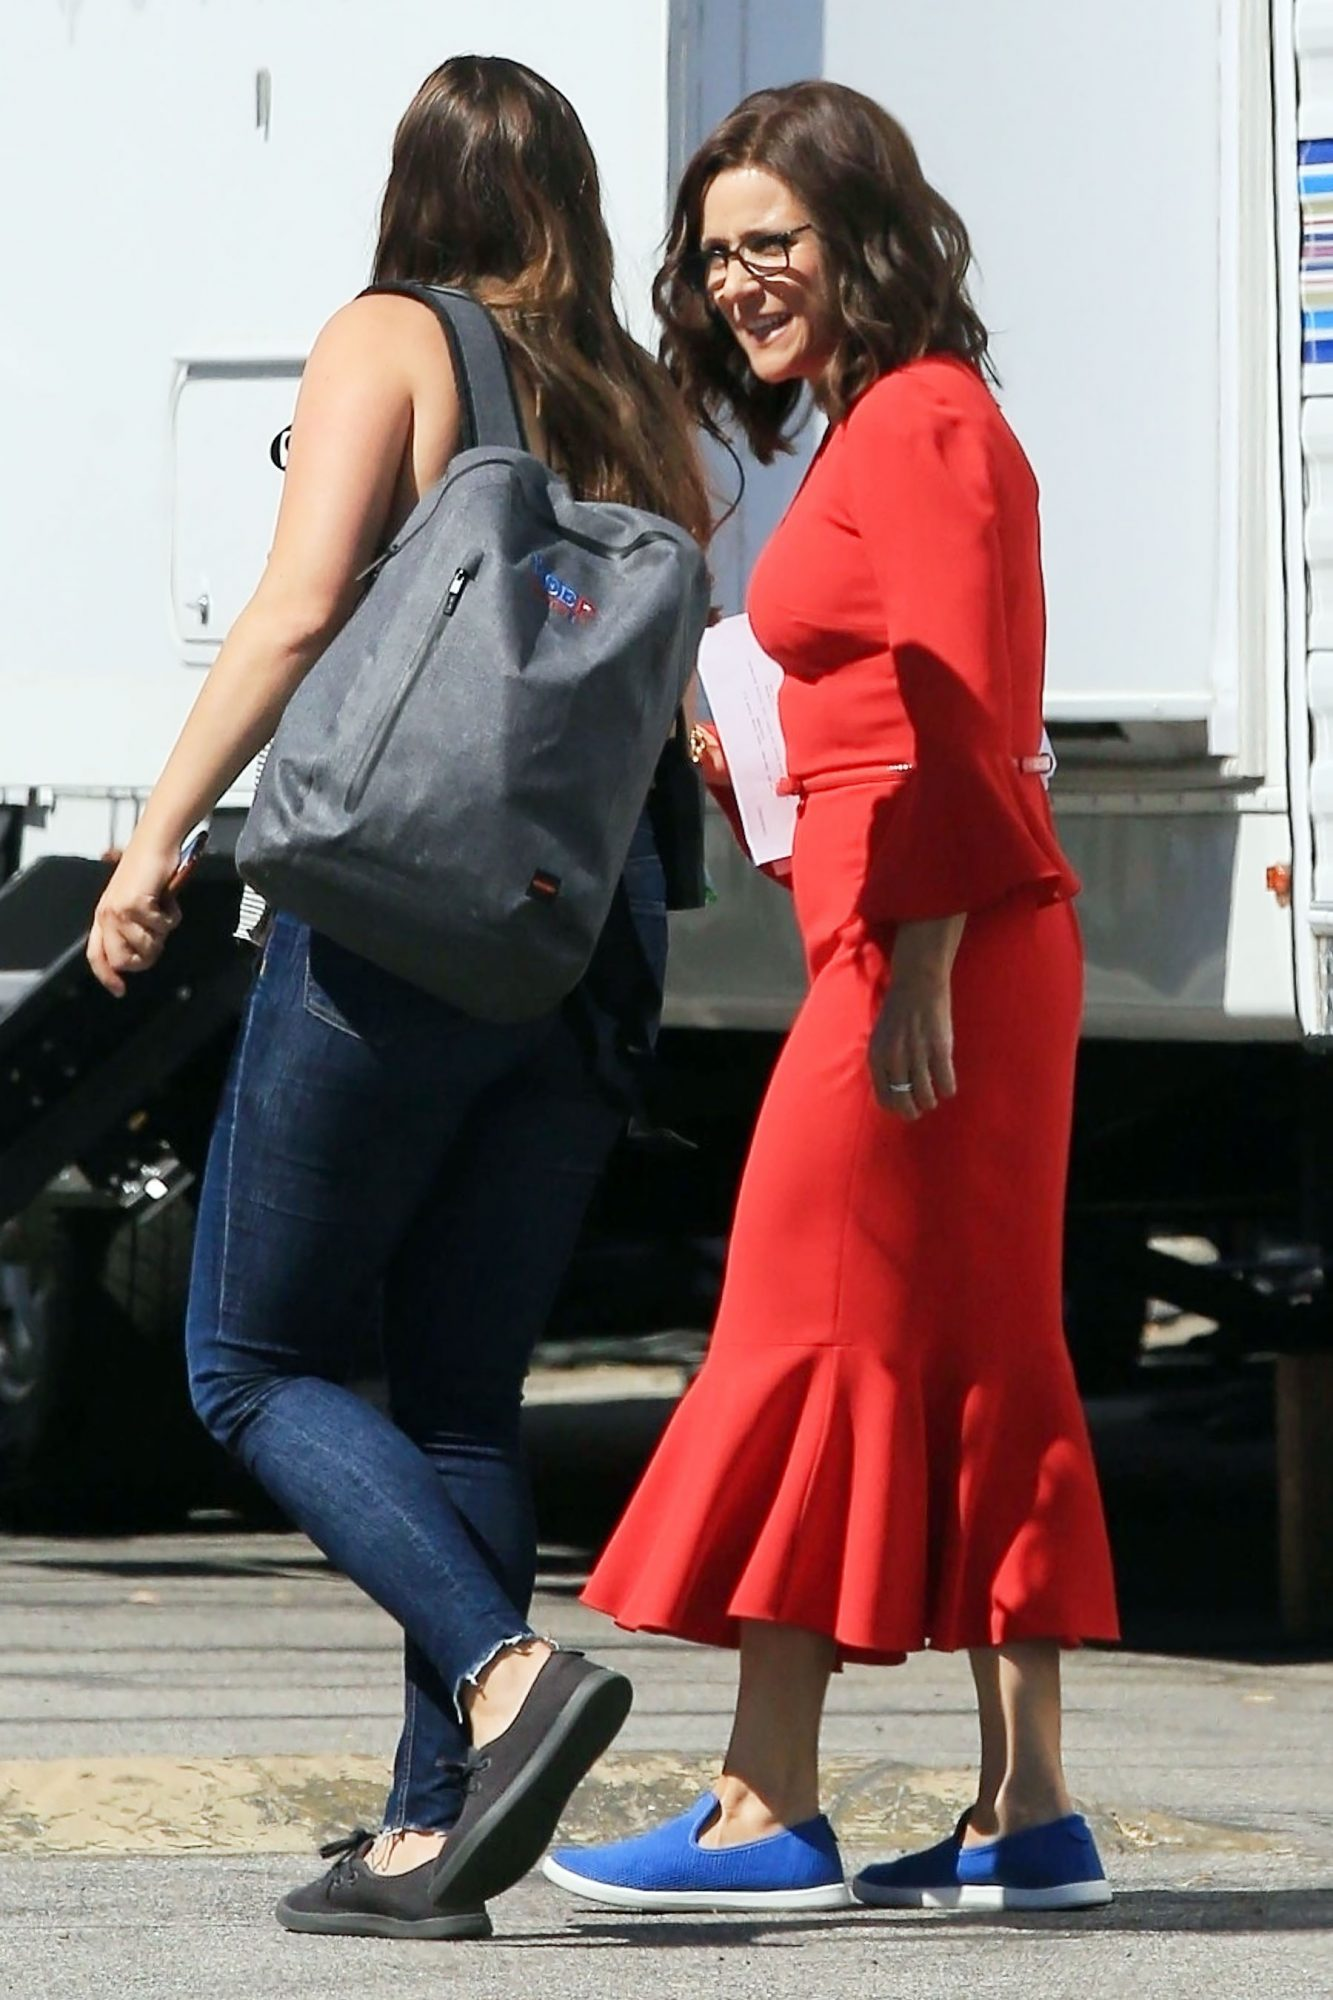 *EXCLUSIVE* Lady in red Julia Louis-Dreyfus ready to film scenes for 'Veep'